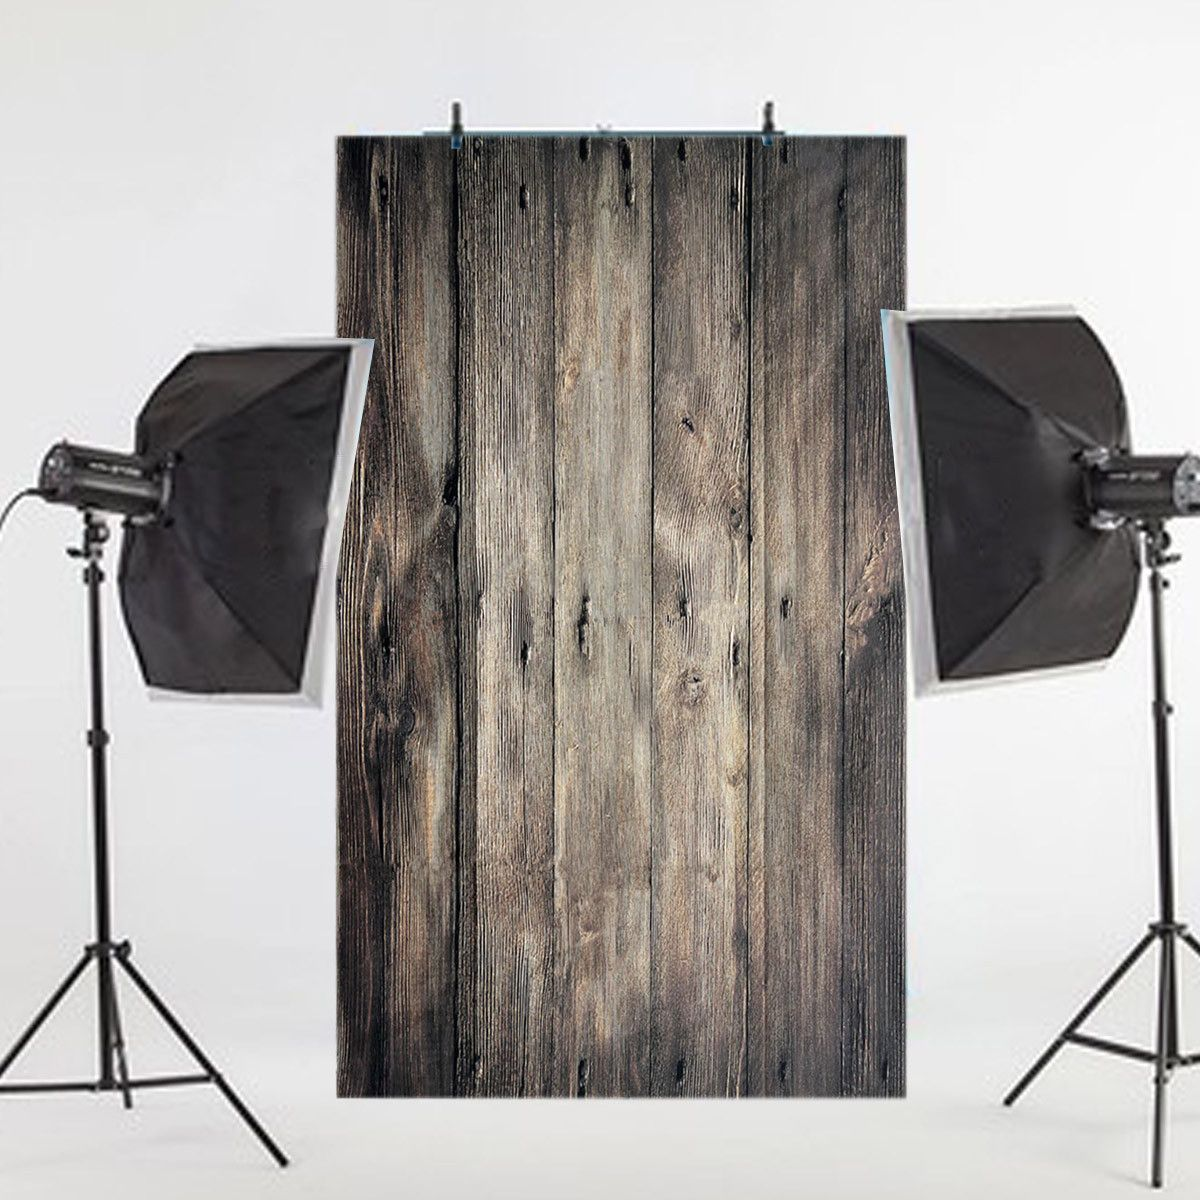 New 3x5FT Vintage Photography Backdrops Wood Vintage Photography Backdrop Backgrounds Studio Wood Background Fotografia лак для губ touch in sol touch in sol to044lwjeh76